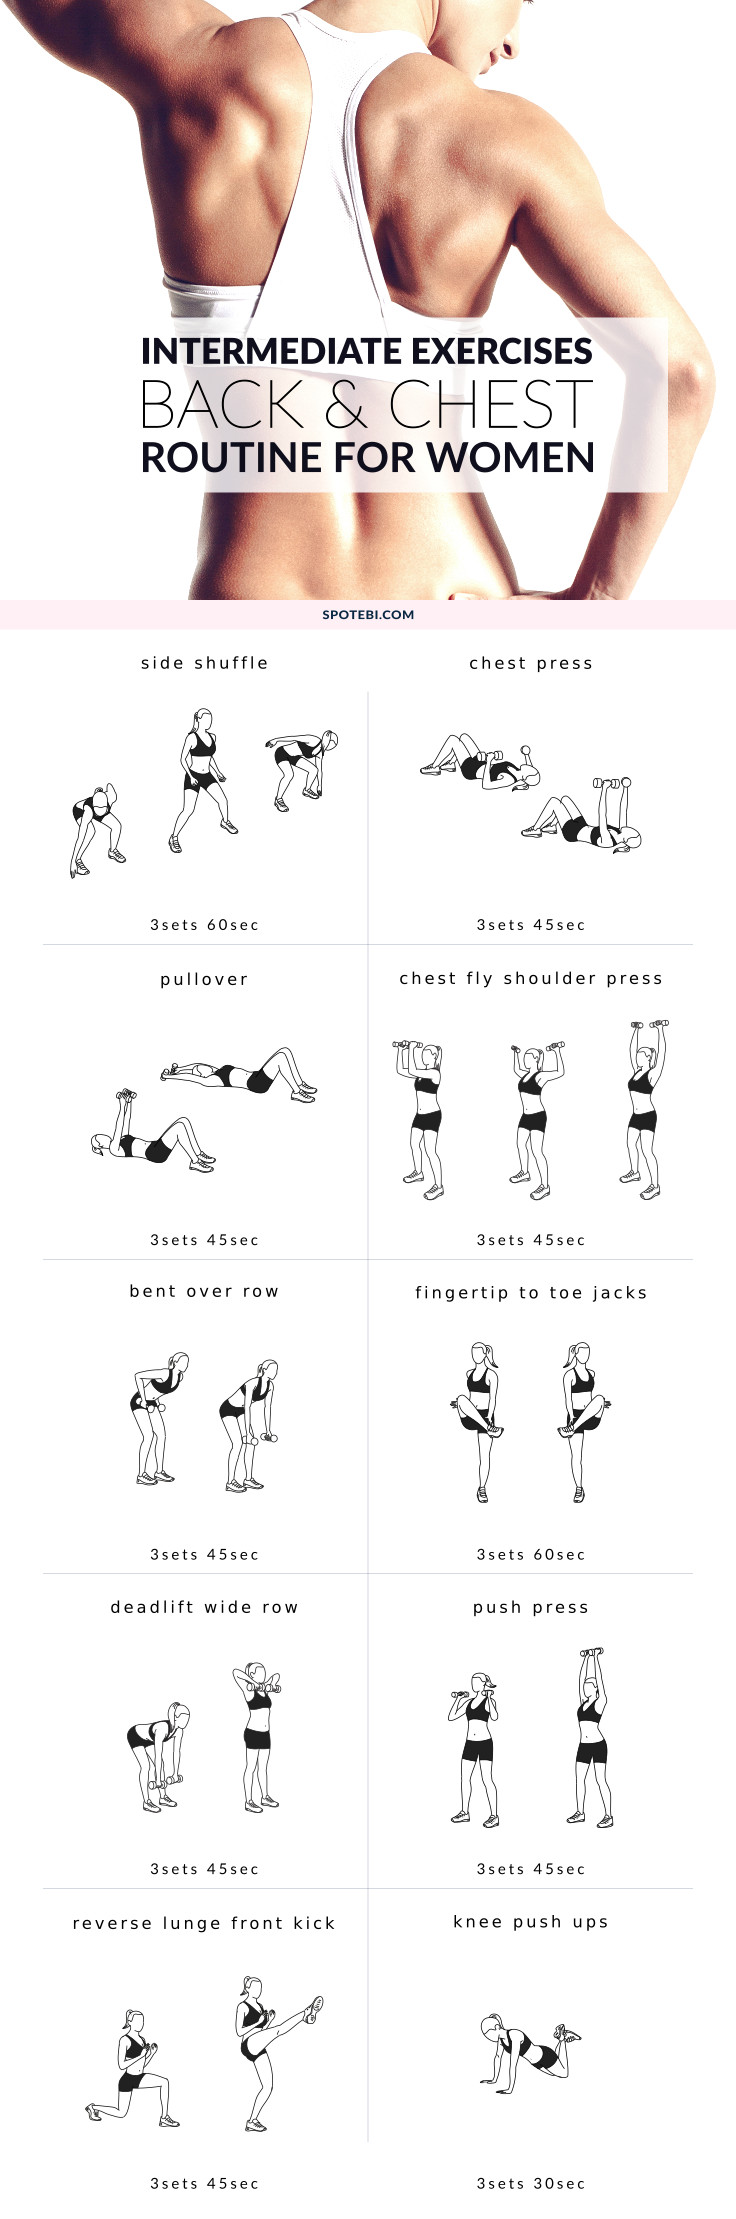 Improve your posture and increase your strength at home with this upper body intermediate workout. A back and chest routine for women that will help you tone your muscles and perk up your breasts! https://www.spotebi.com/workout-routines/upper-body-intermediate-workout/